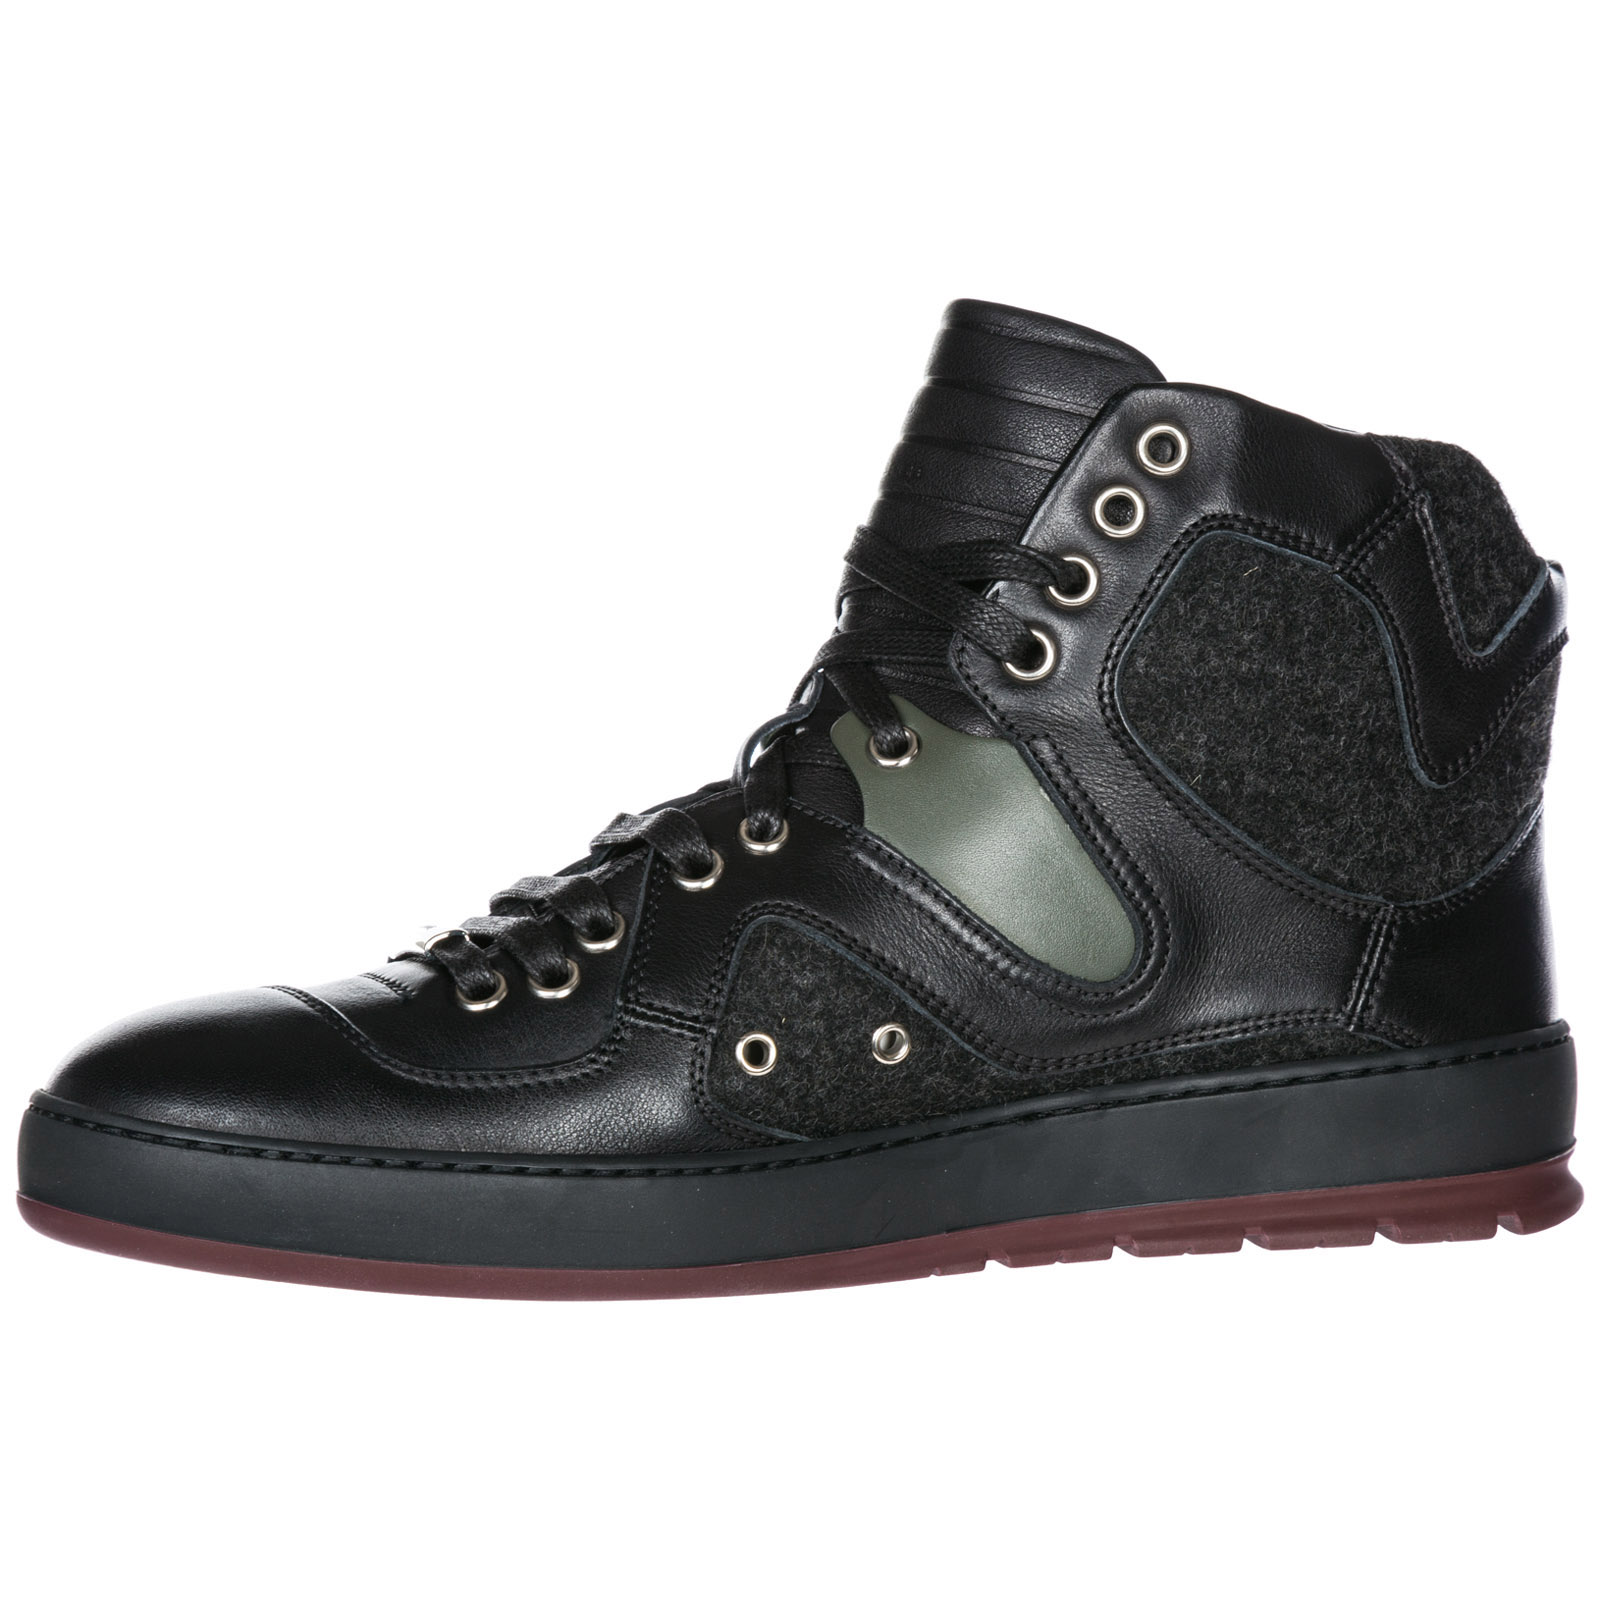 Men's shoes high top leather trainers sneakers b19